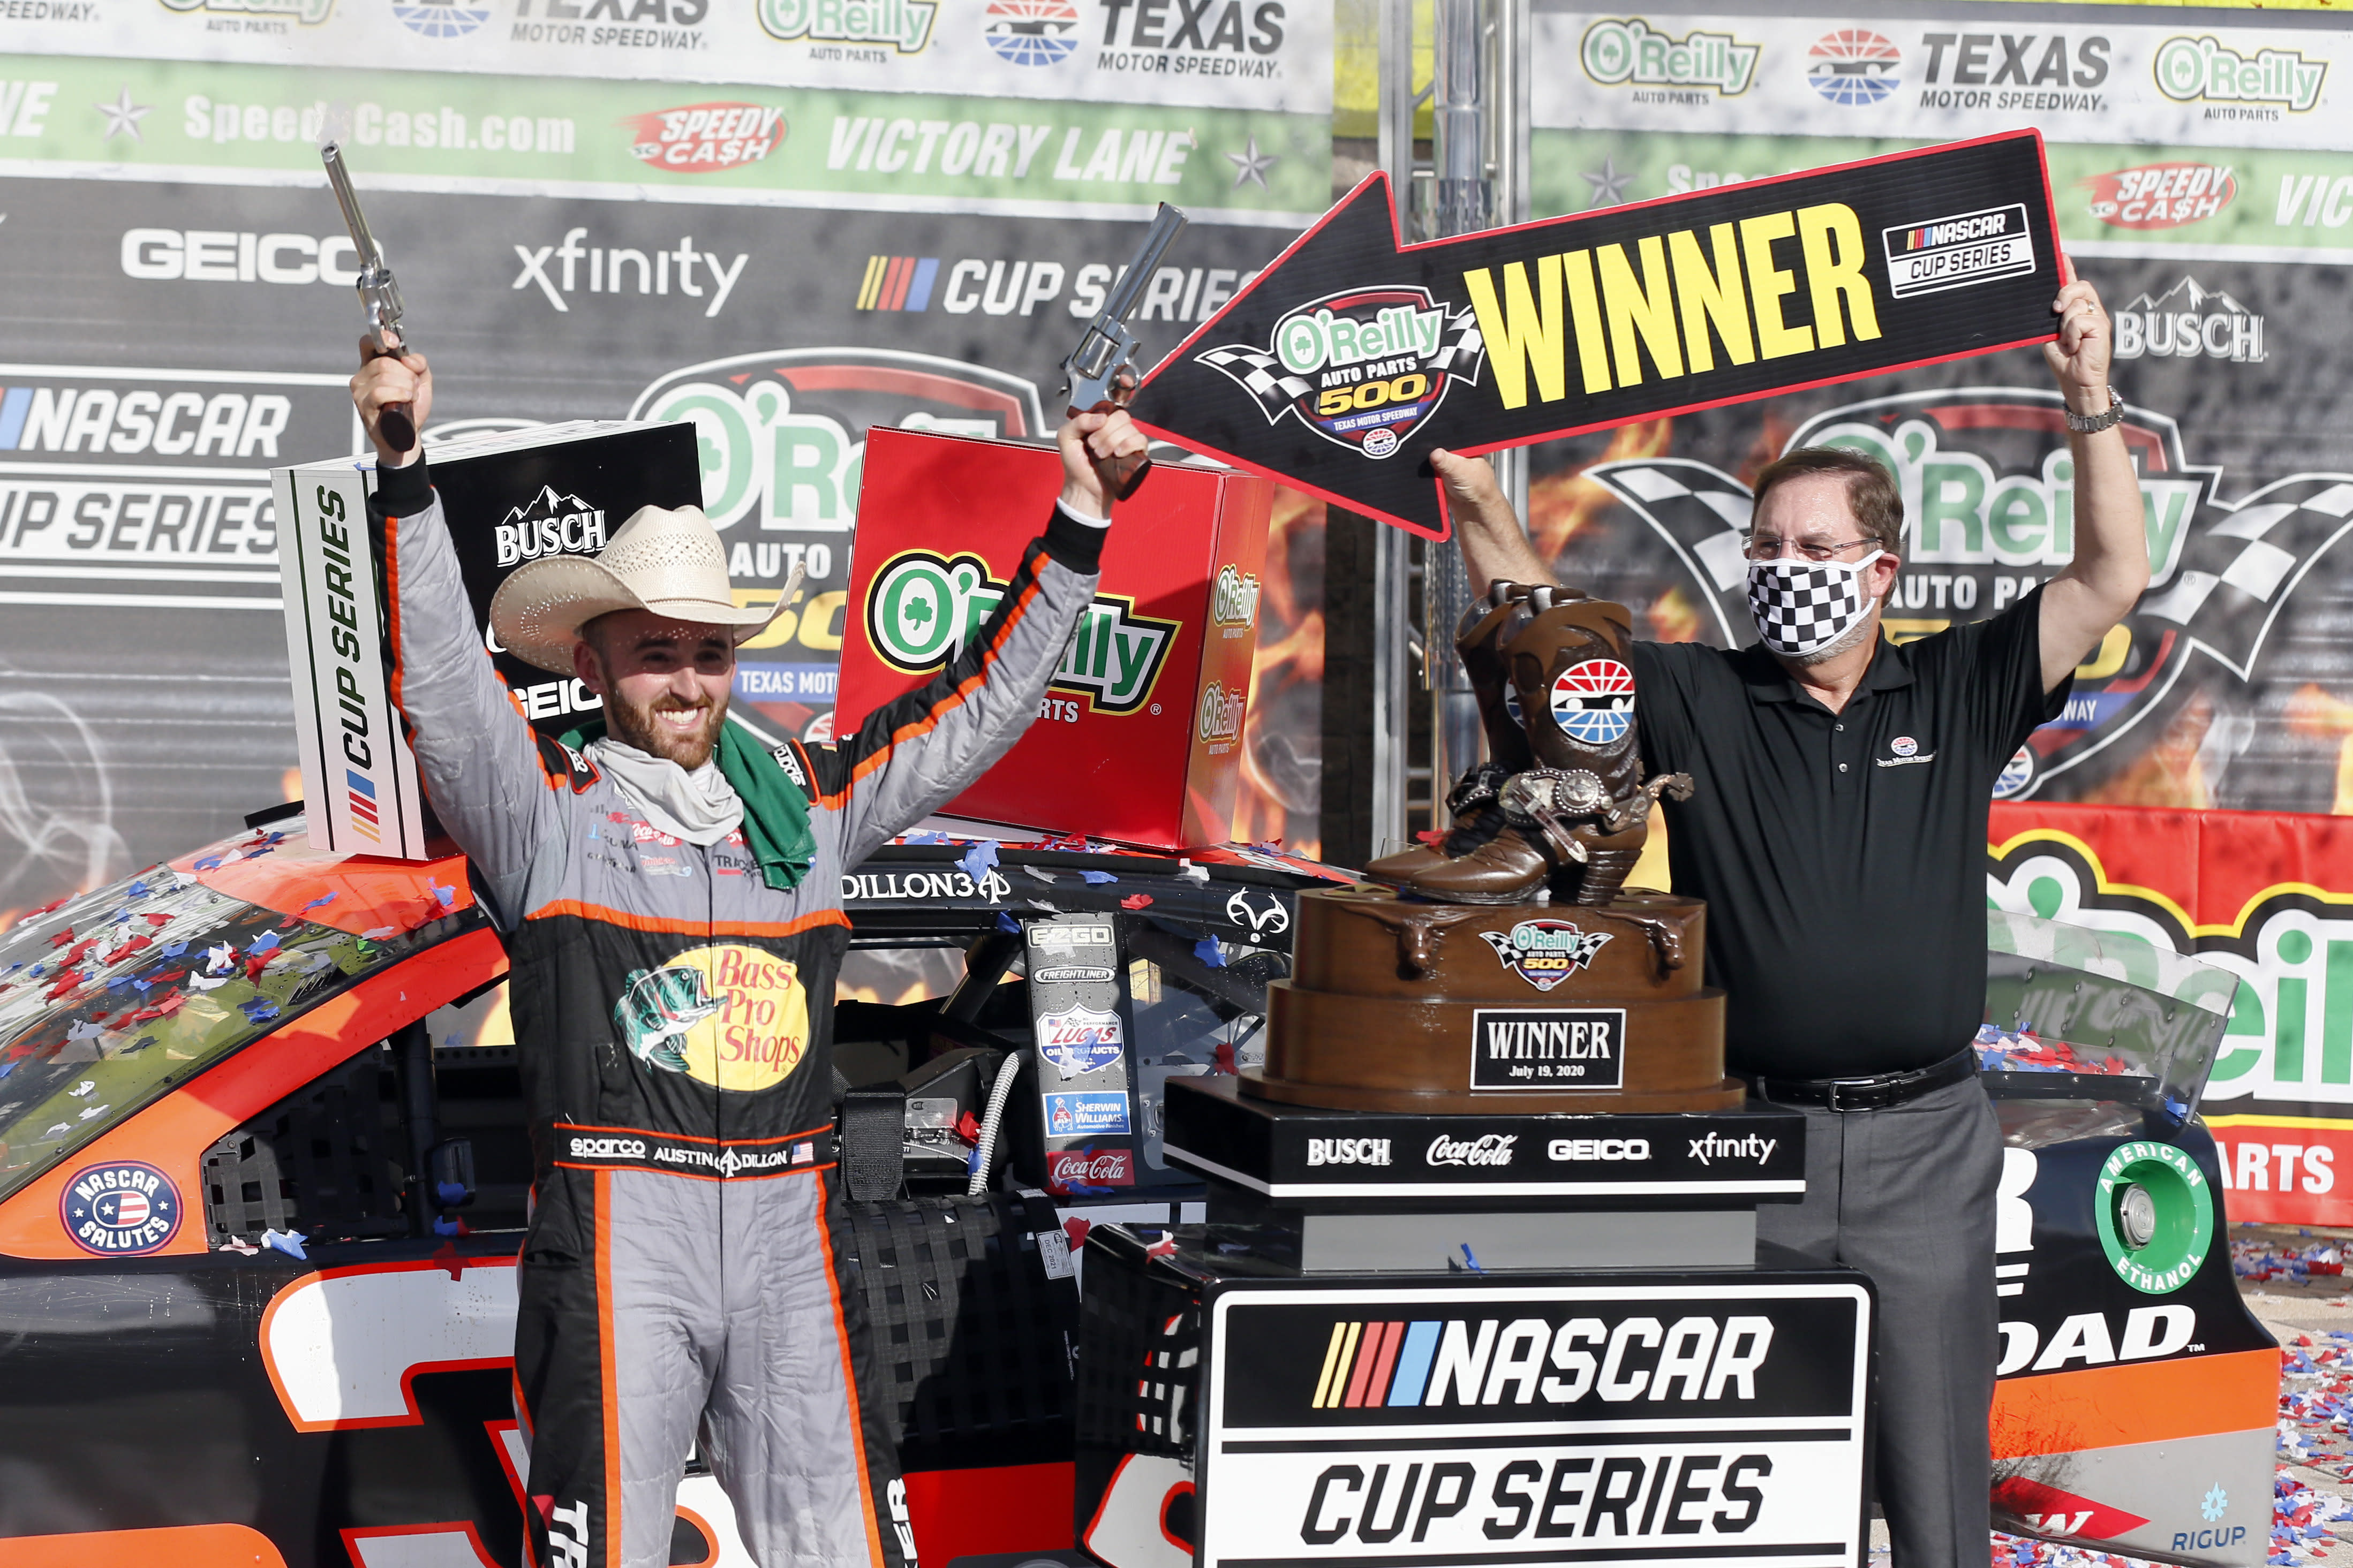 """Texas Motor Speedway President and General Manager Eddie Gossage, right, holds a """"winner"""" sign as Austin Dillon, left, celebrates by firing six shooters after winning the NASCAR Cup Series auto race at Texas Motor Speedway in Fort Worth, Texas, Sunday, July 19, 2020. (AP Photo/Ray Carlin)"""